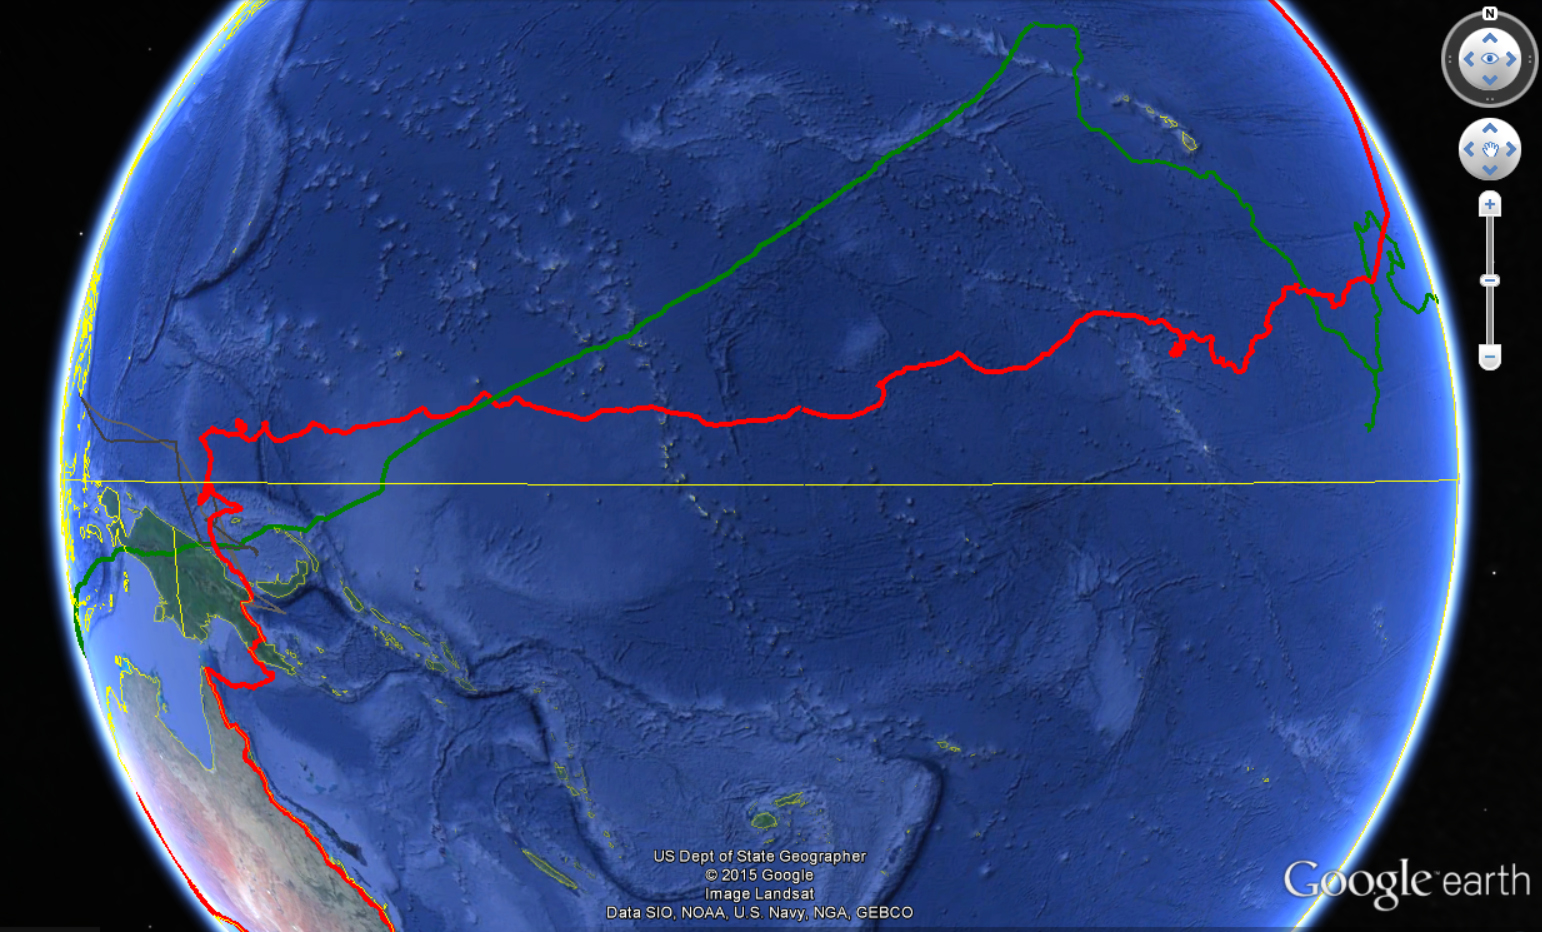 Image: The red line indicates the course made true across the Pacific Ocean.